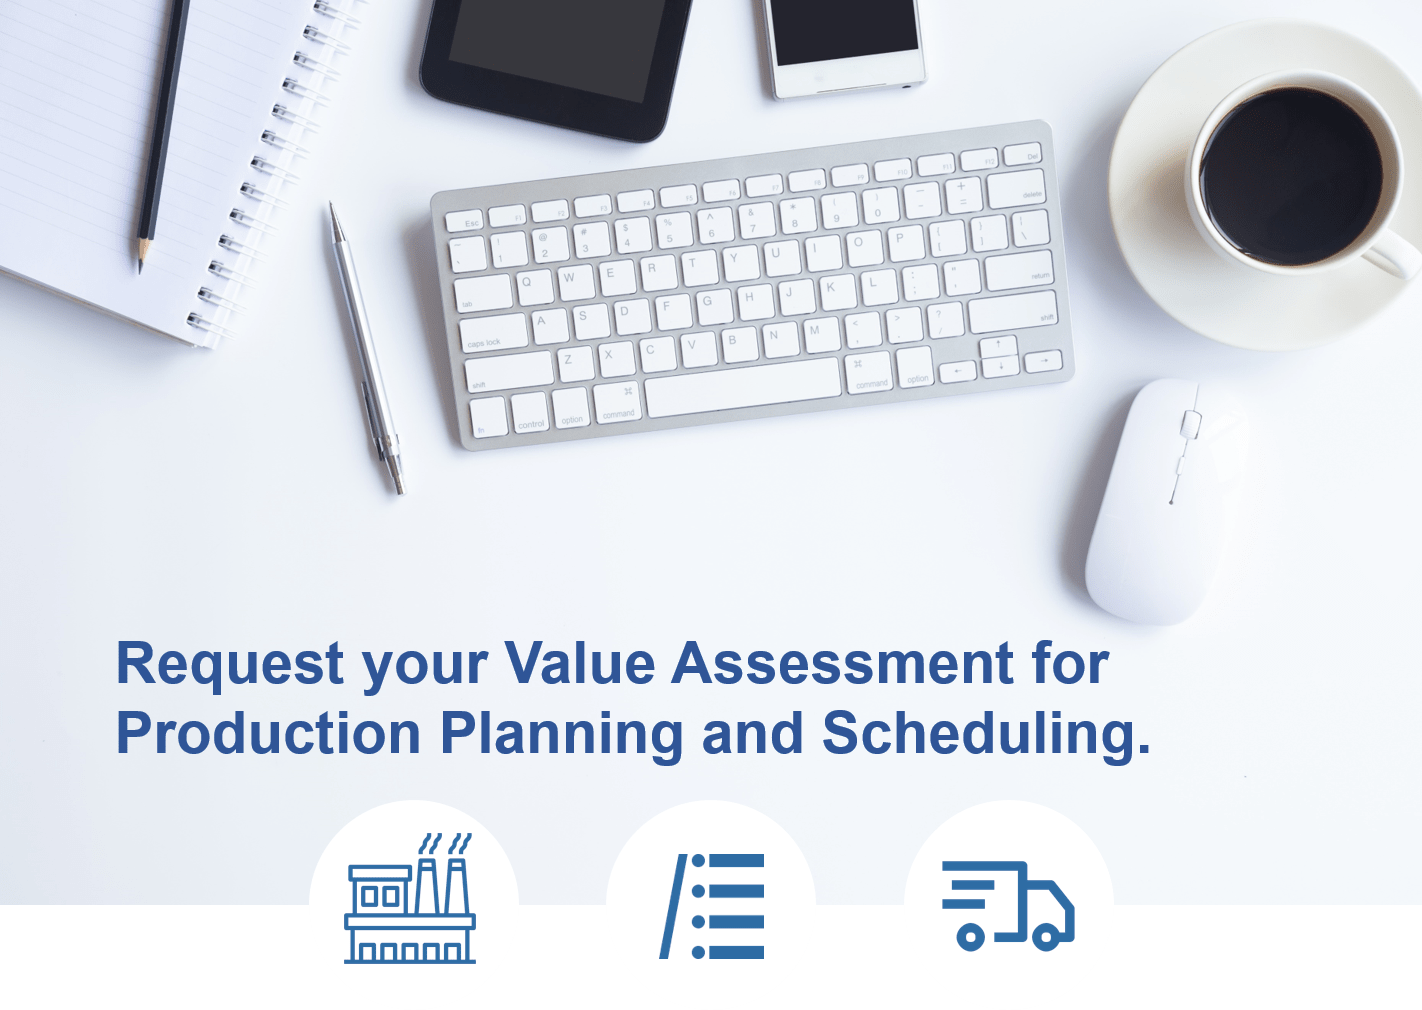 Production Planning and Scheduling Value Assessment Request